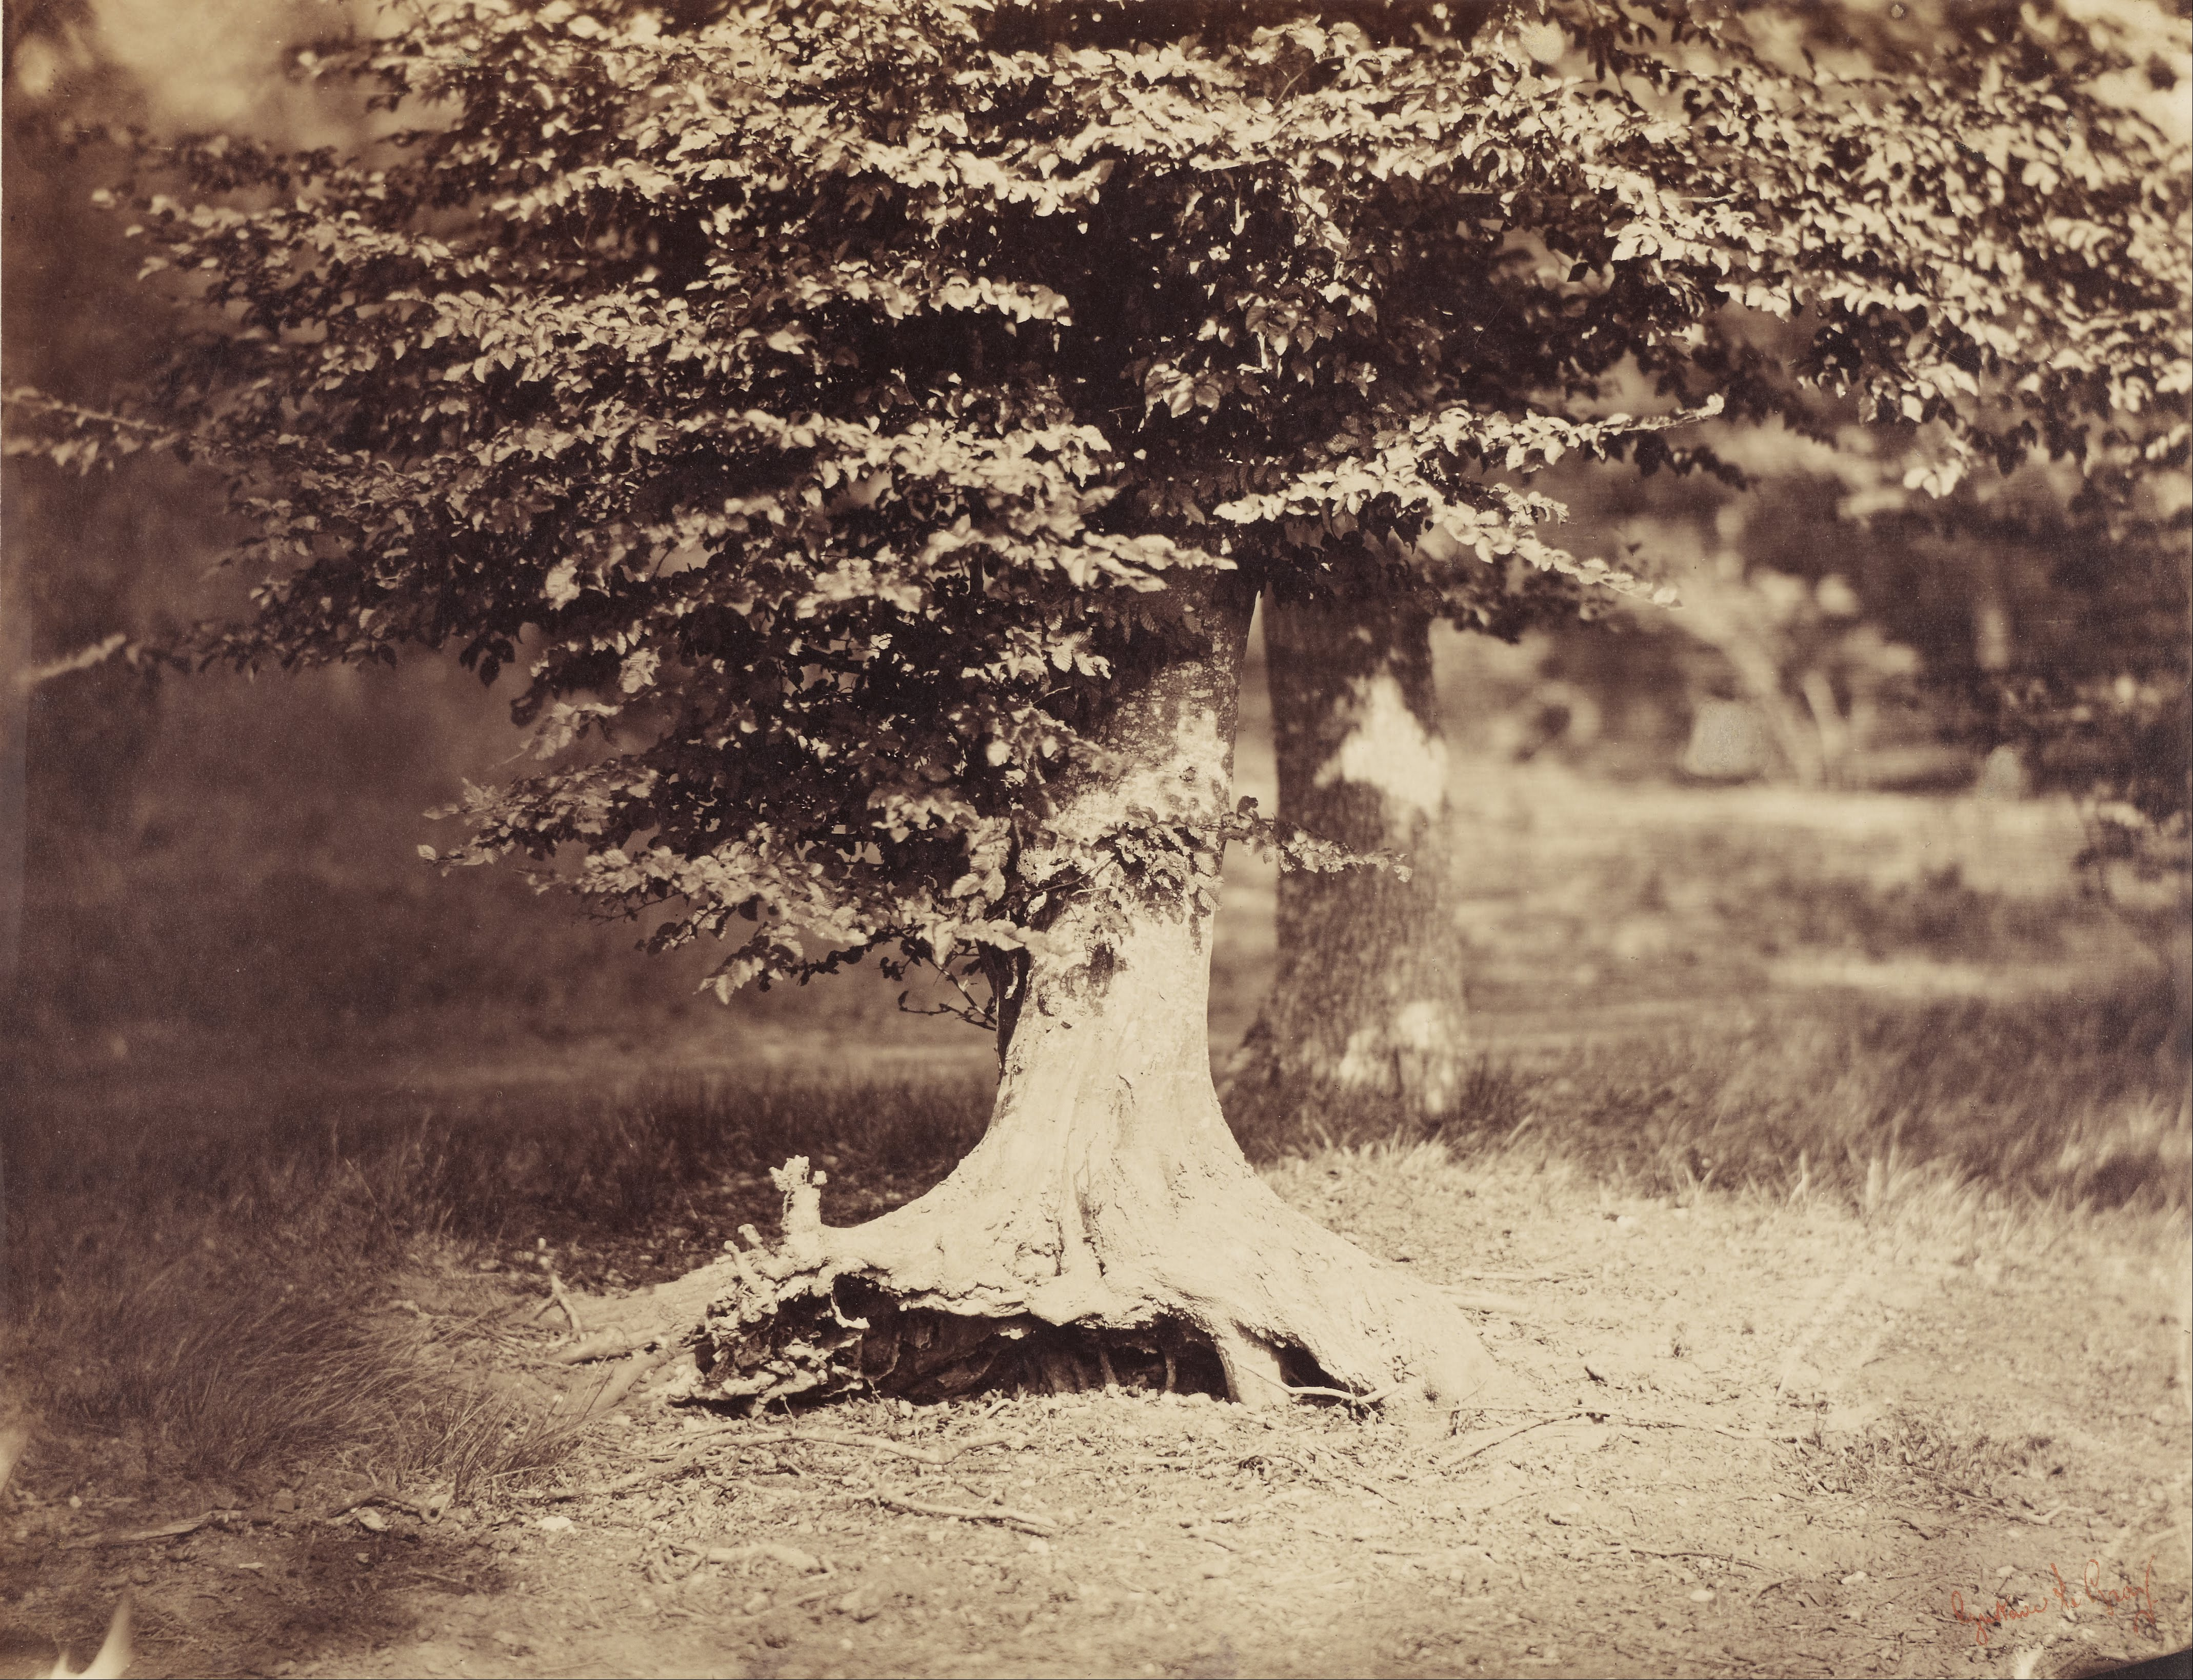 The Beech Tree, one of the most expensive photographs ever sold at auction.